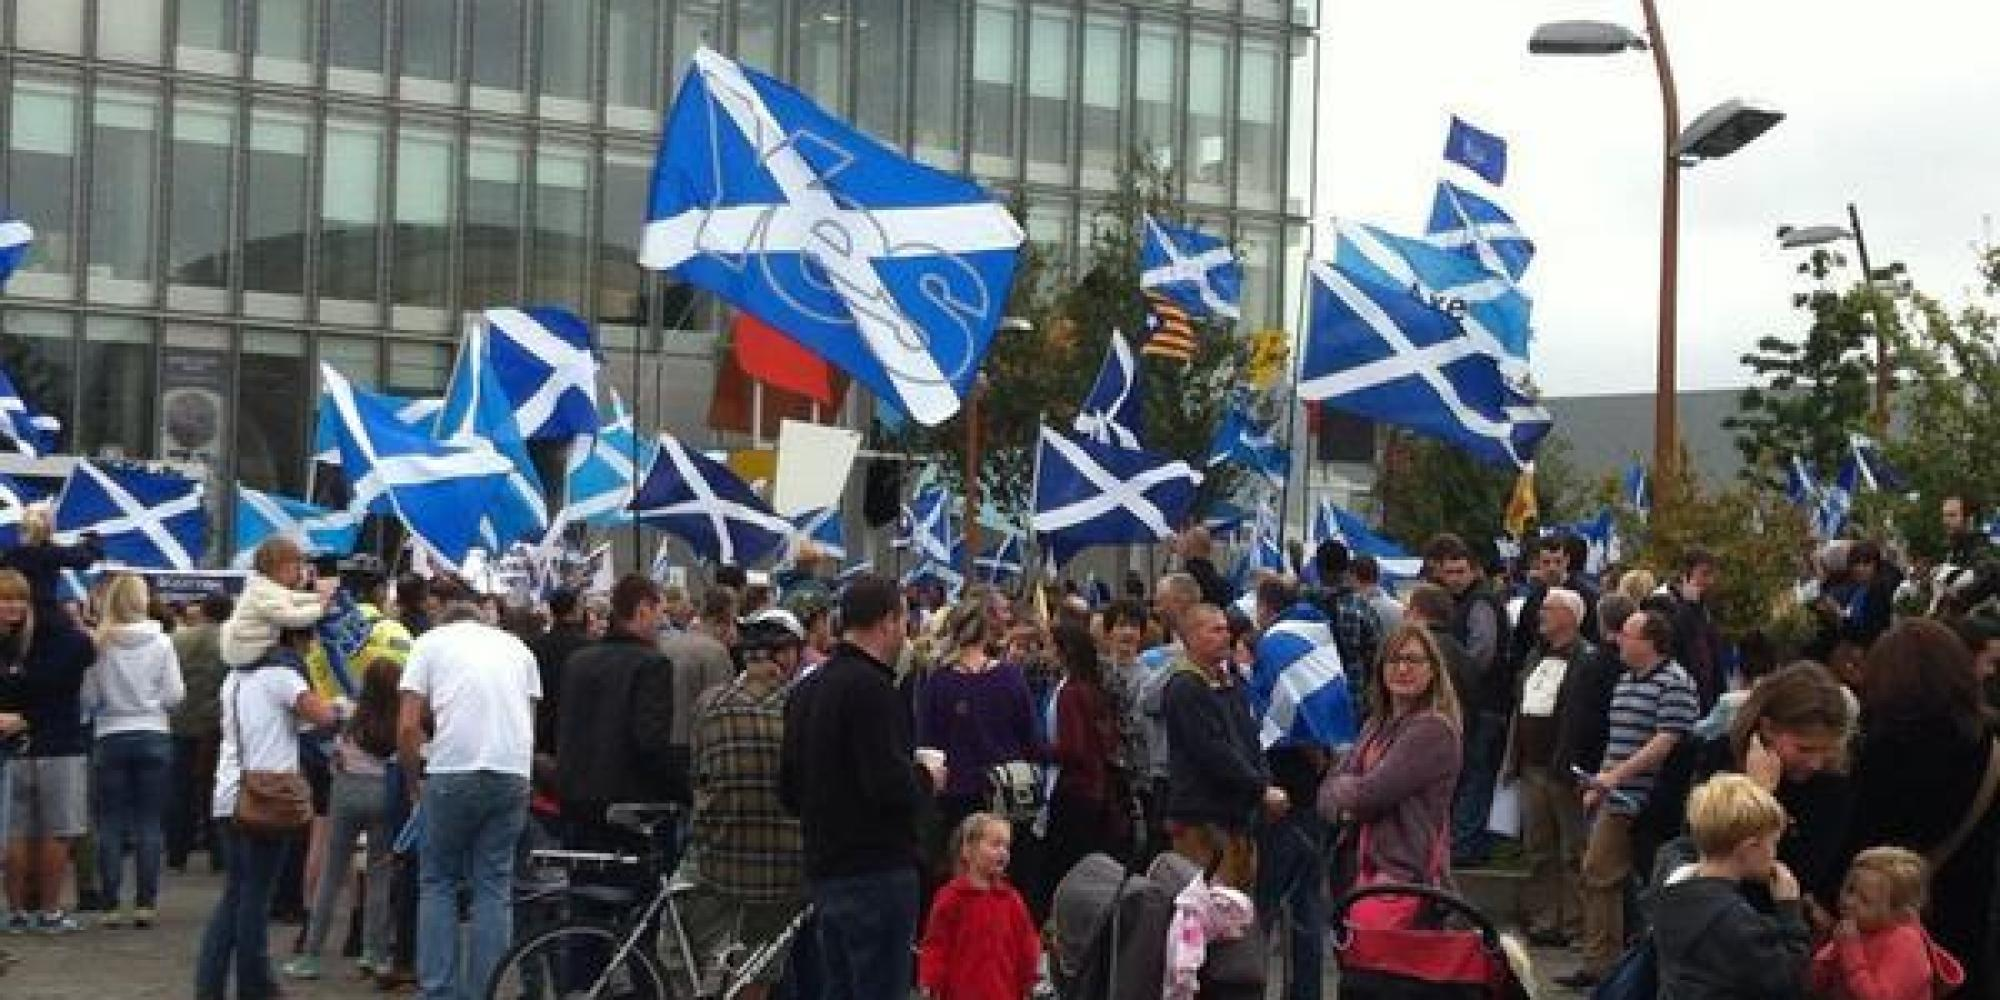 scottish nationalism Prof john curtice says the bbc survey on national identity shows a difference in what nationalism means.